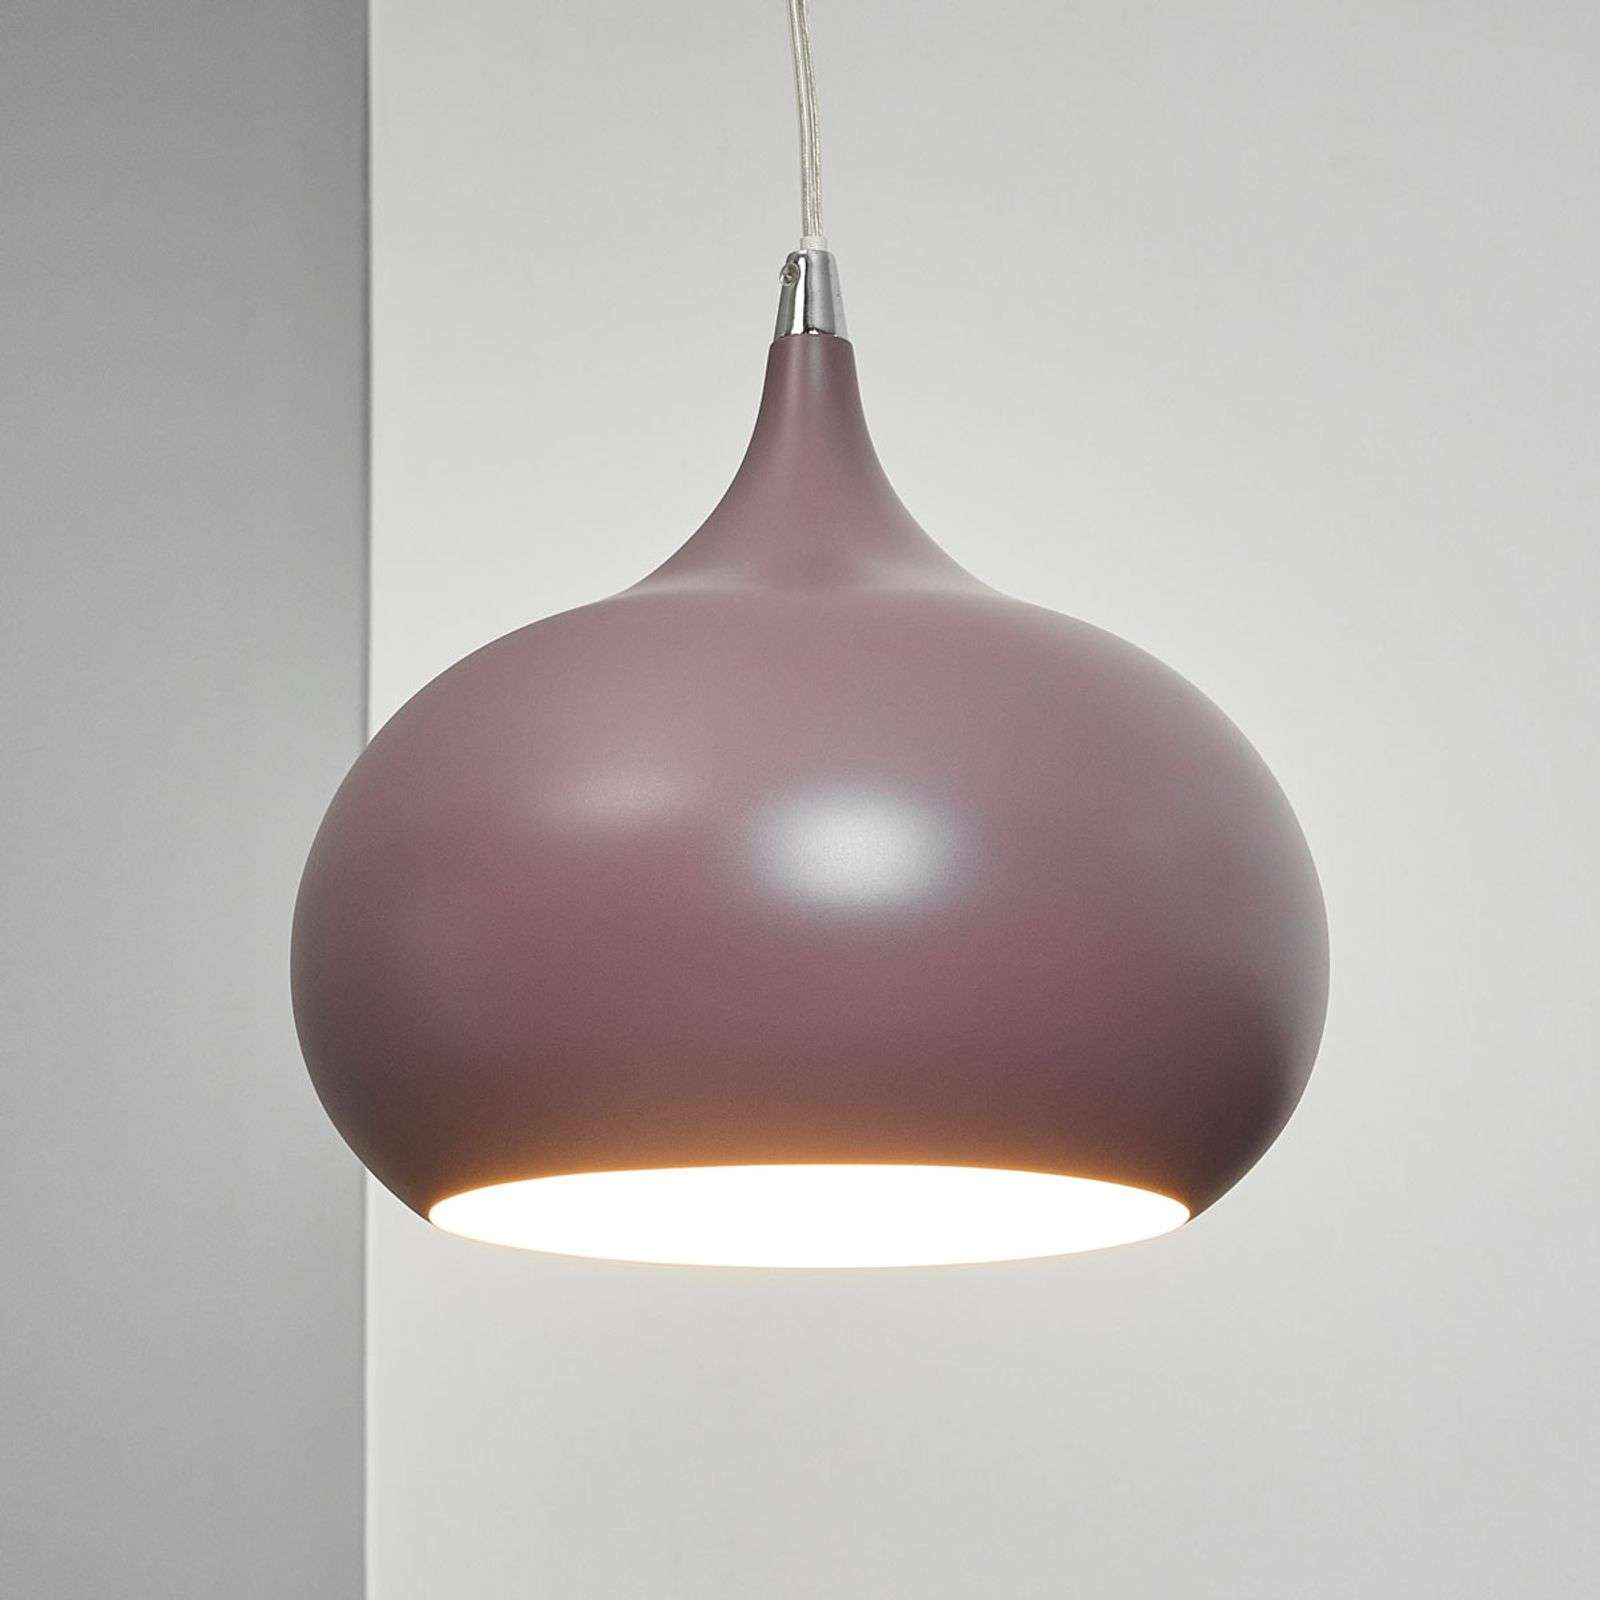 Suspension Riva aubergine